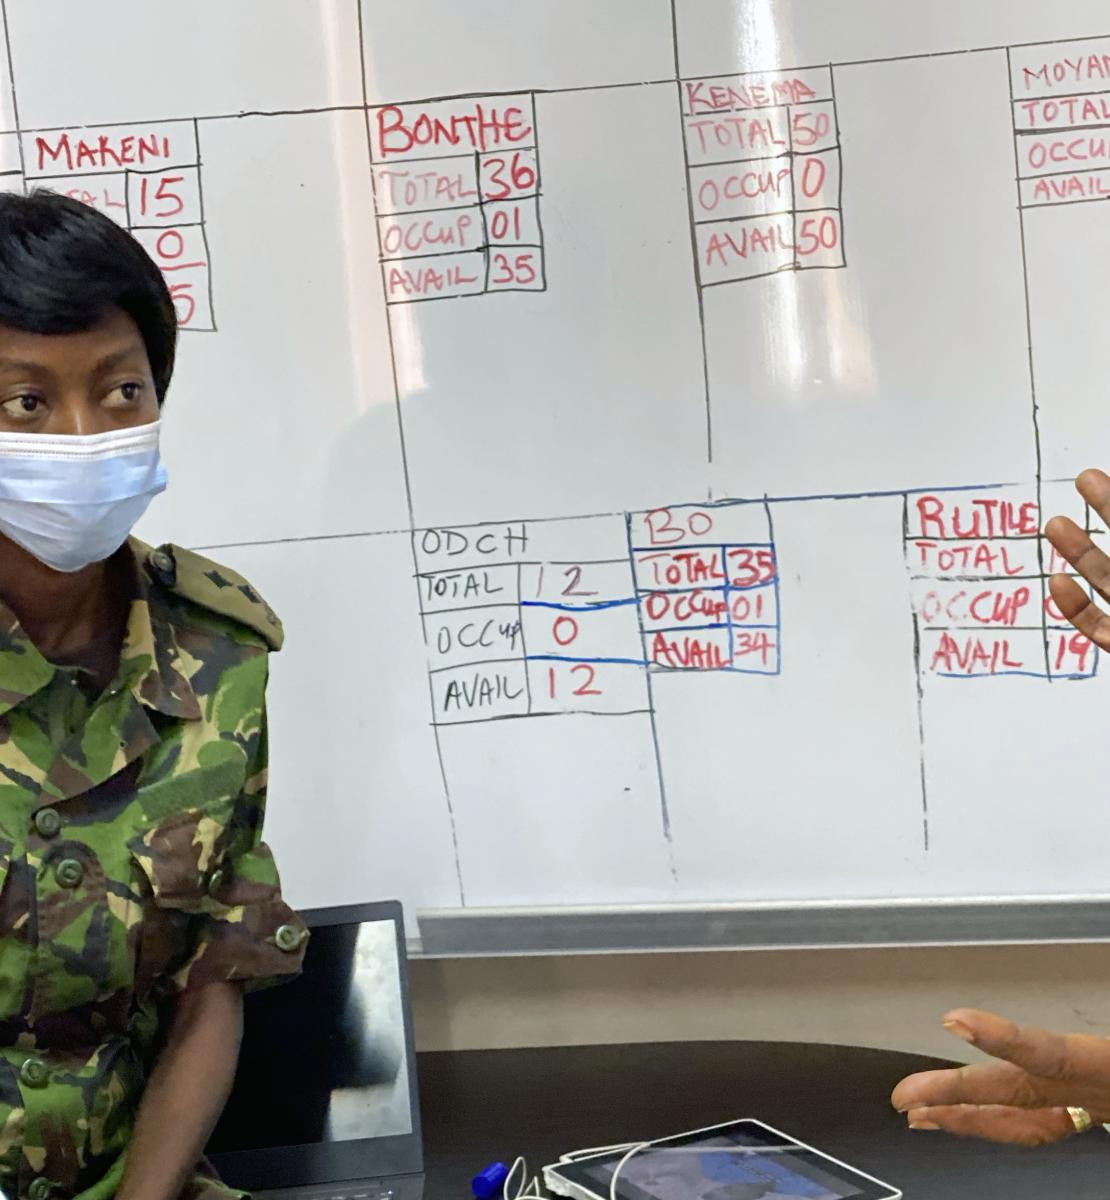 Lt. Moiwo and her colleague discuss the case management dashboard.